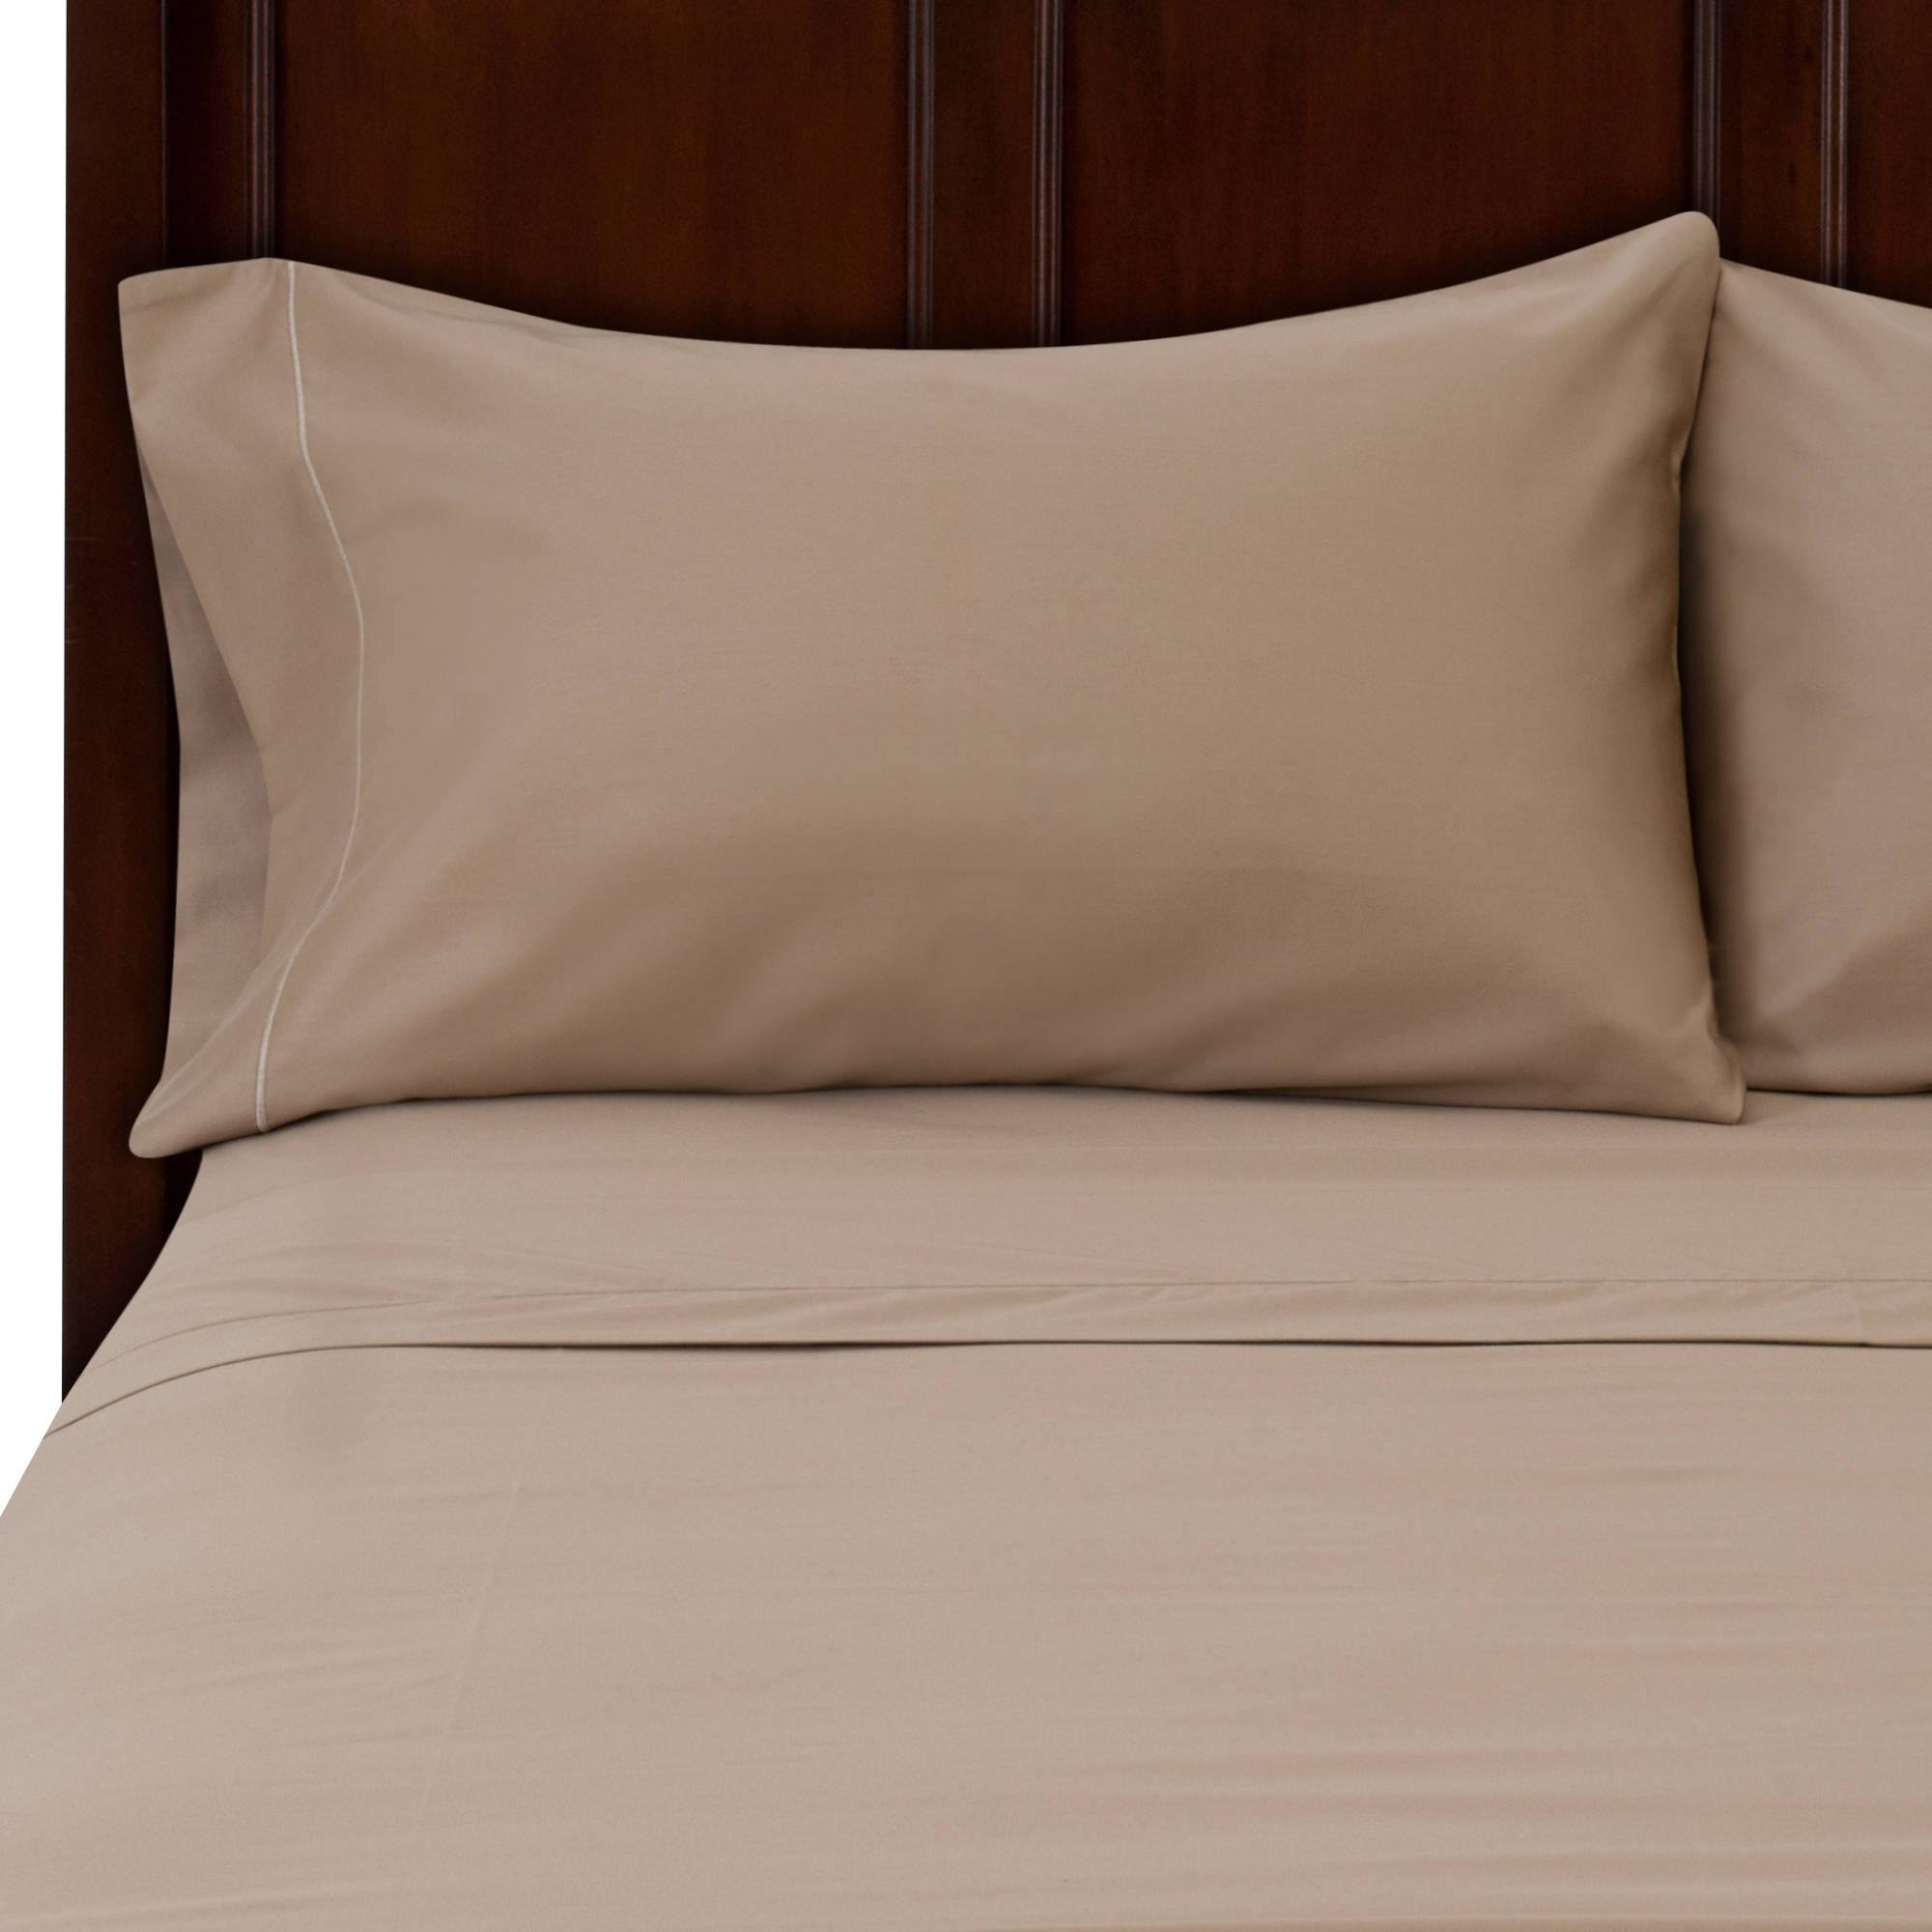 Best Egyptian Hotel Style 500 Thread Count Wrinkle Free Sheet Set